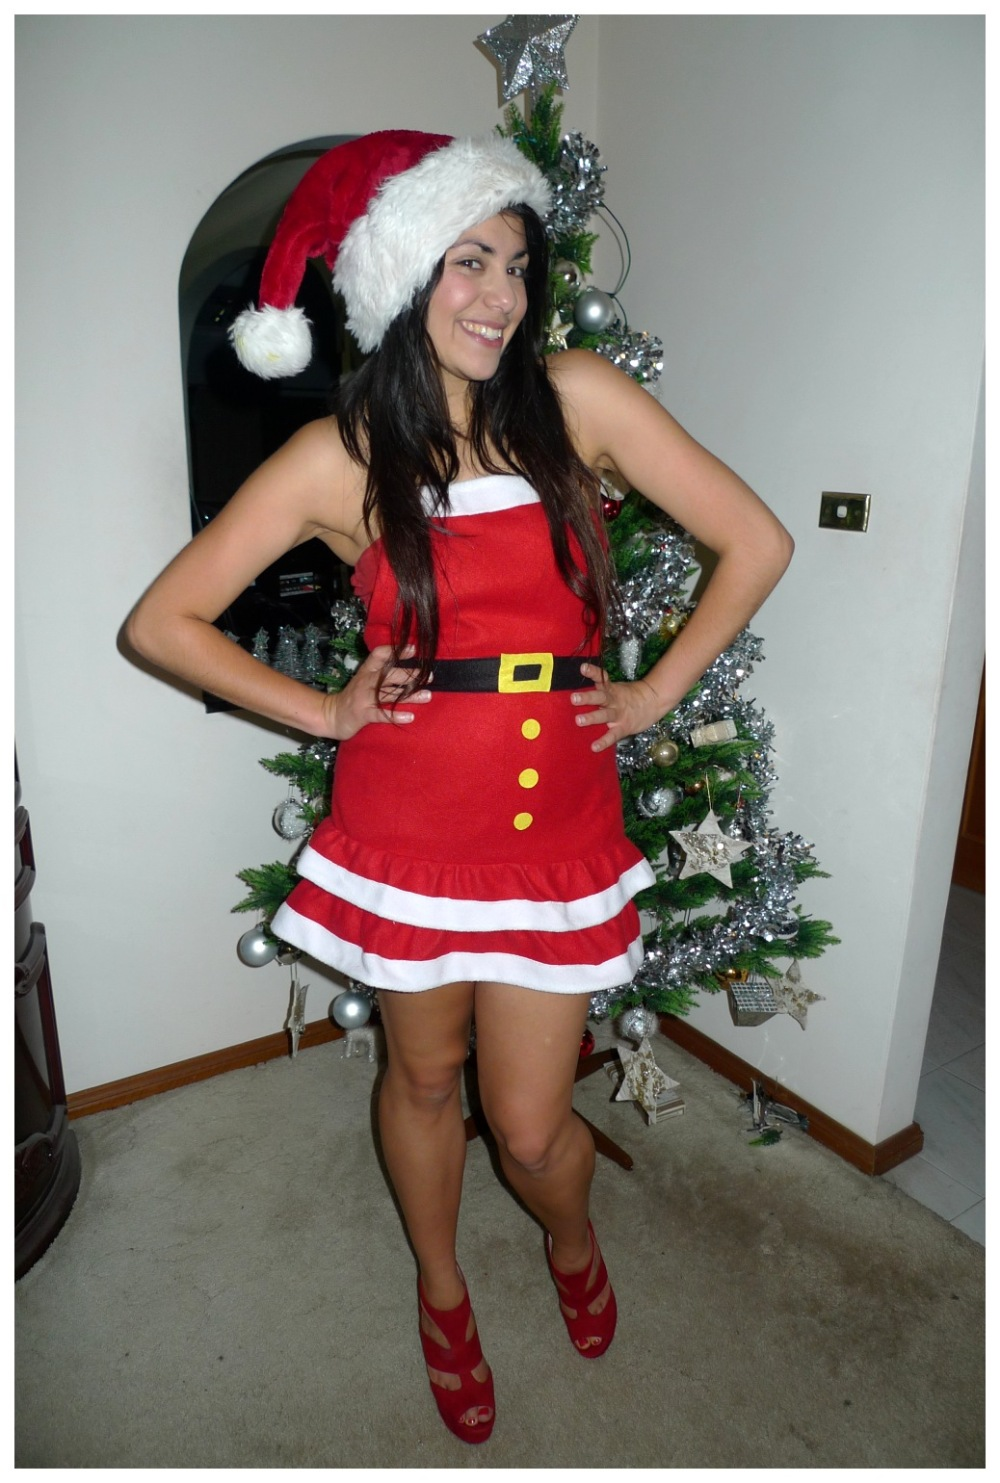 Day 178: Mrs Claus